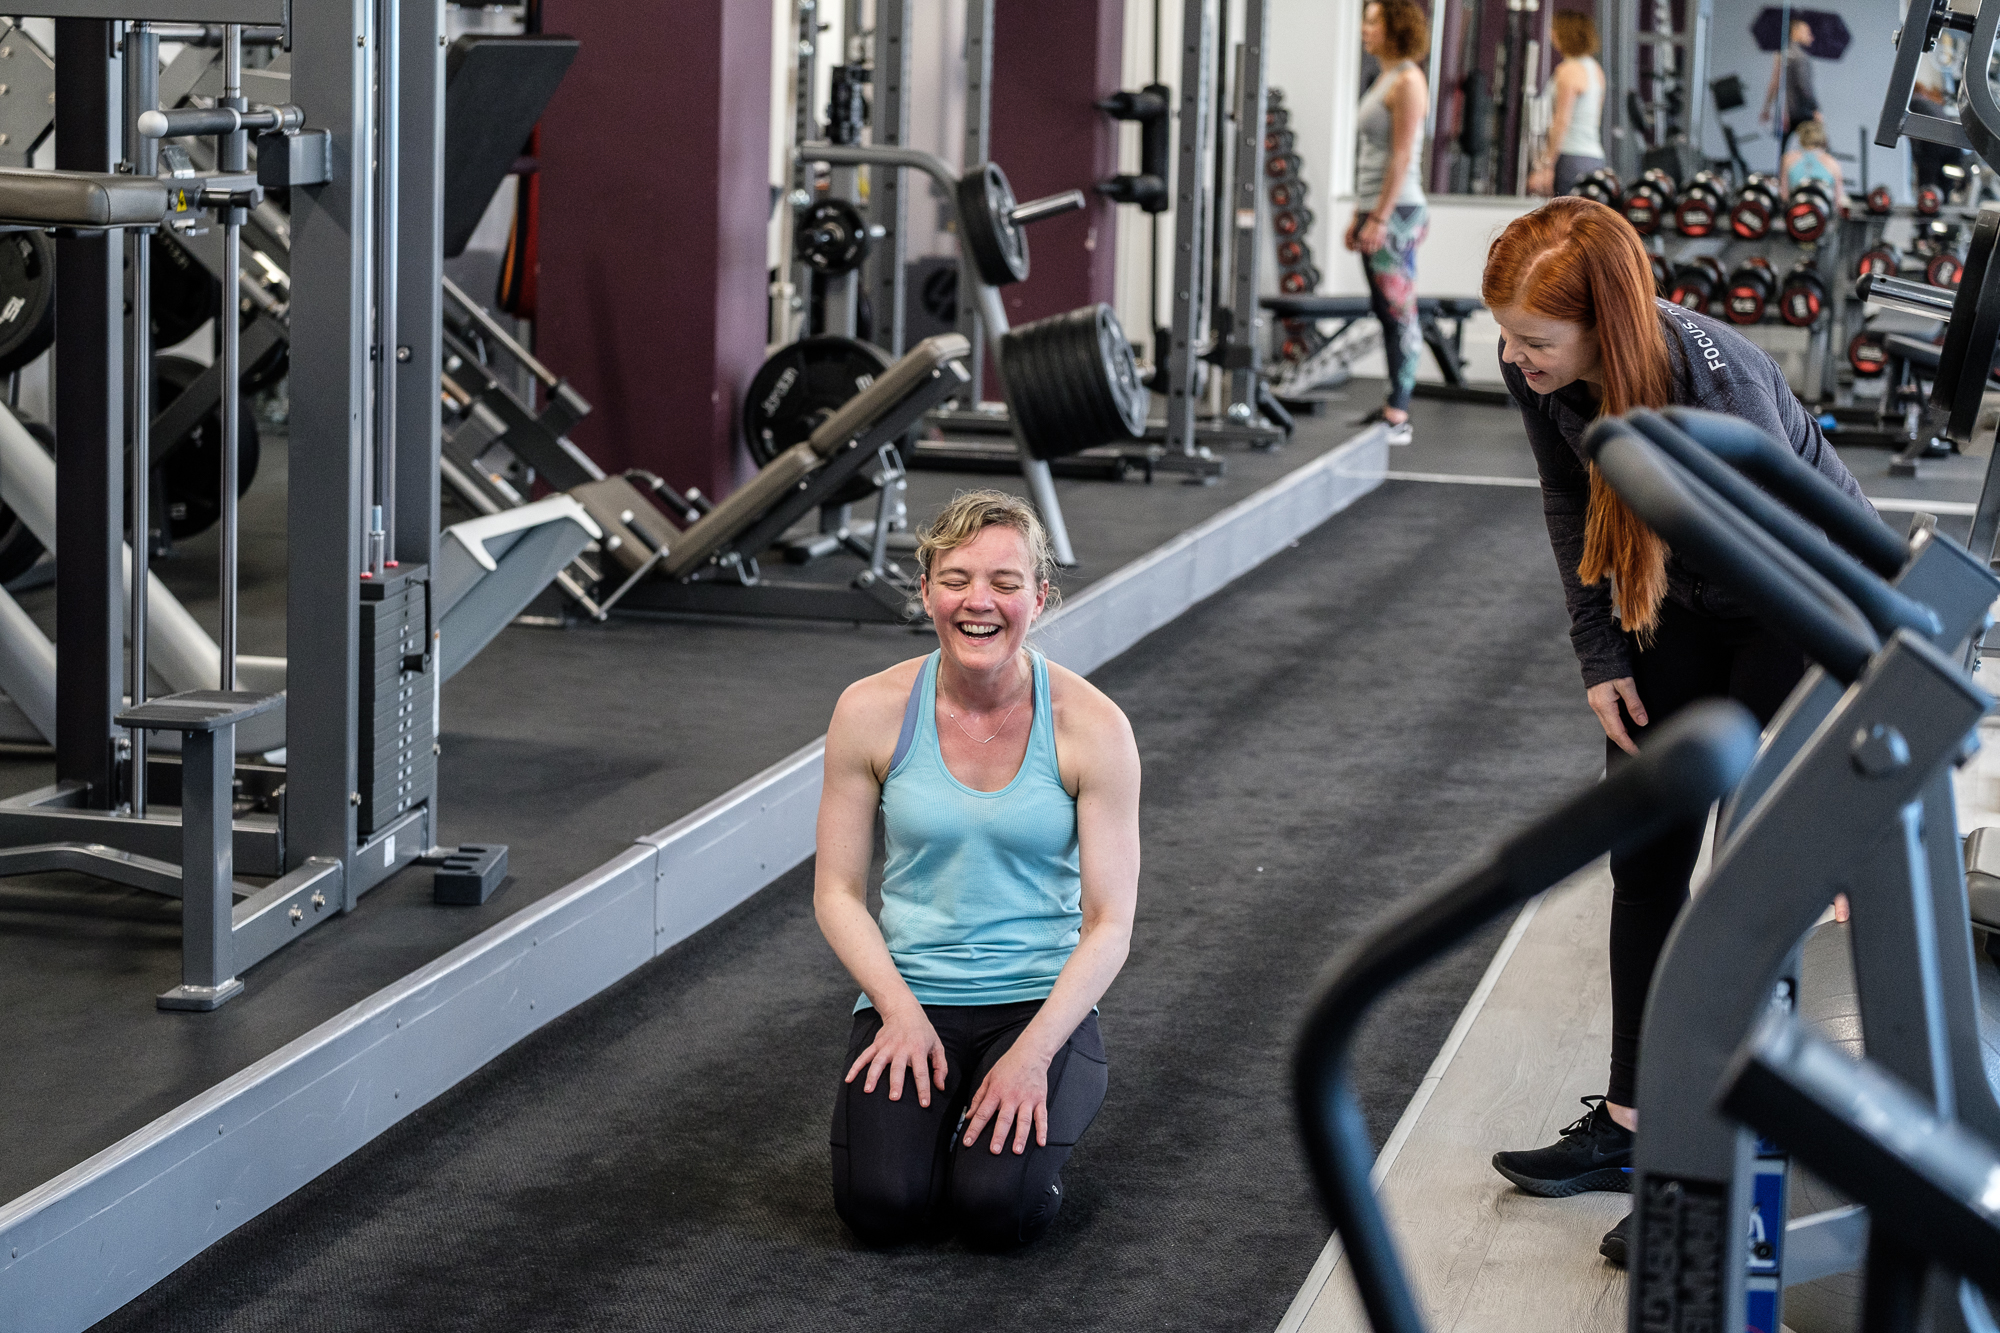 personal training manchester - session with Libby Smith